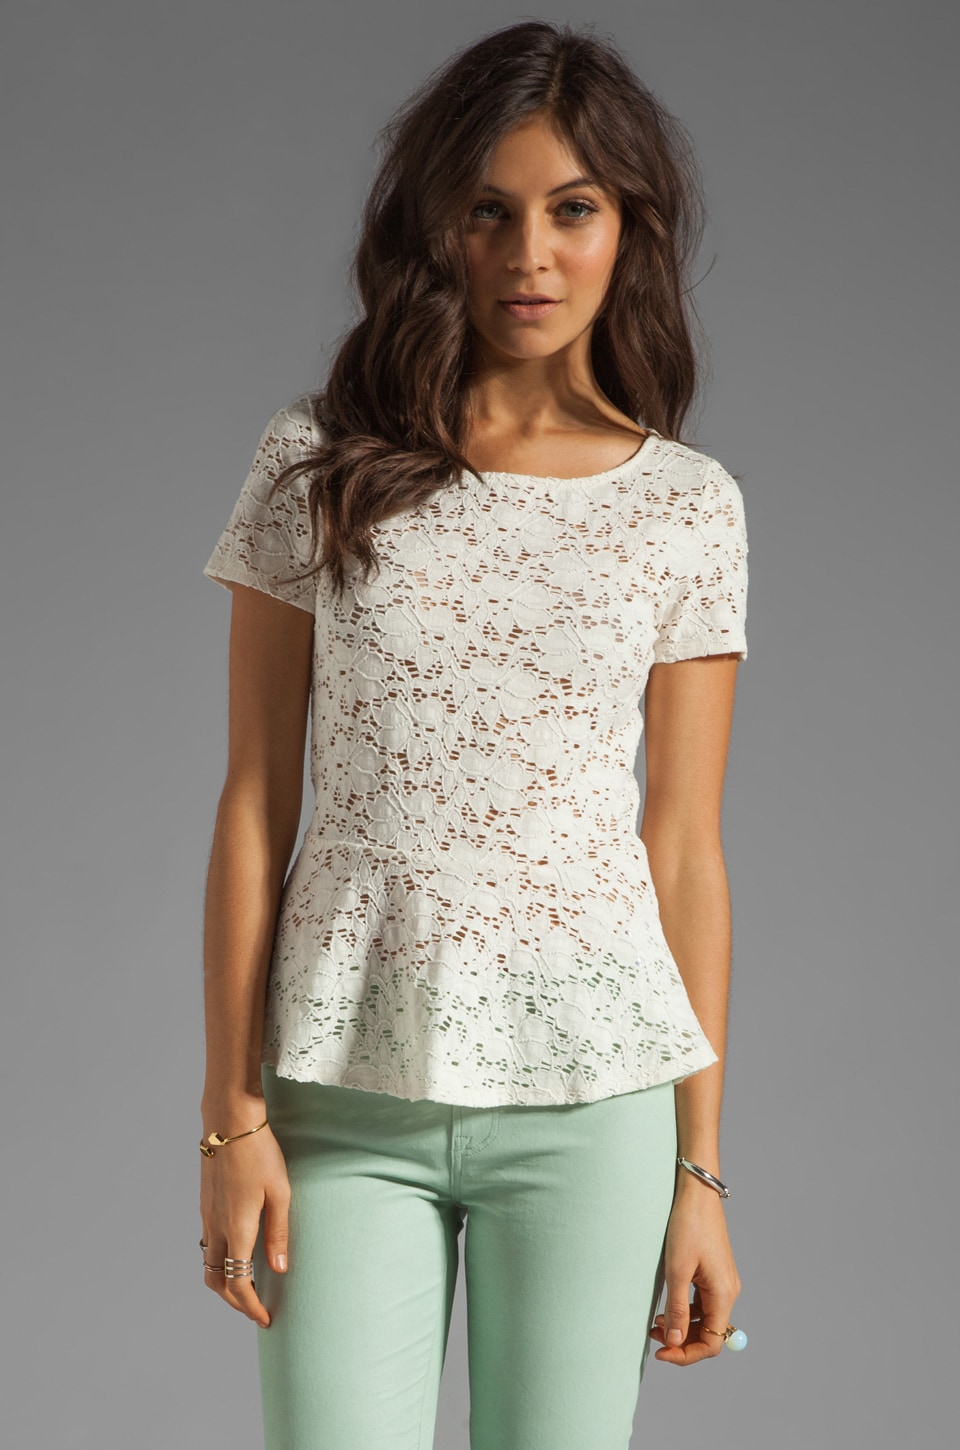 Velvet by Graham & Spencer Ruthie Stretch Lace Peplum Top in Oyster